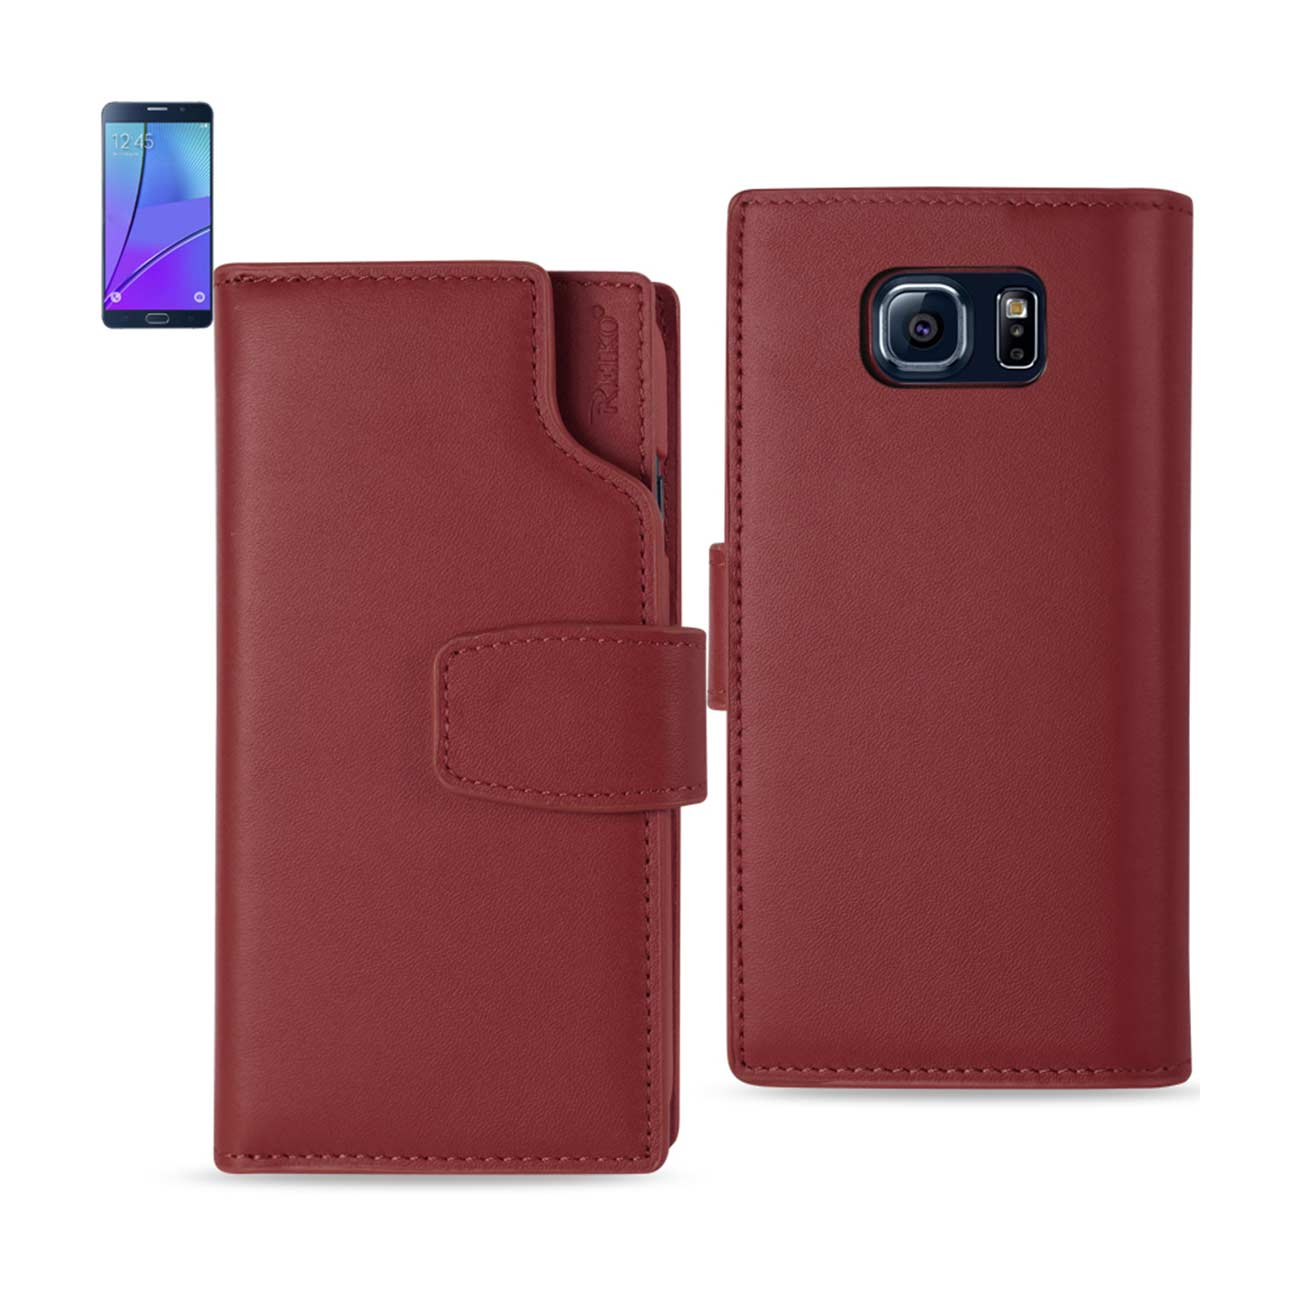 SAMSUNG GALAXY NOTE 5 GENUINE LEATHER WALLET CASE WITH OPEN THUMB CUT